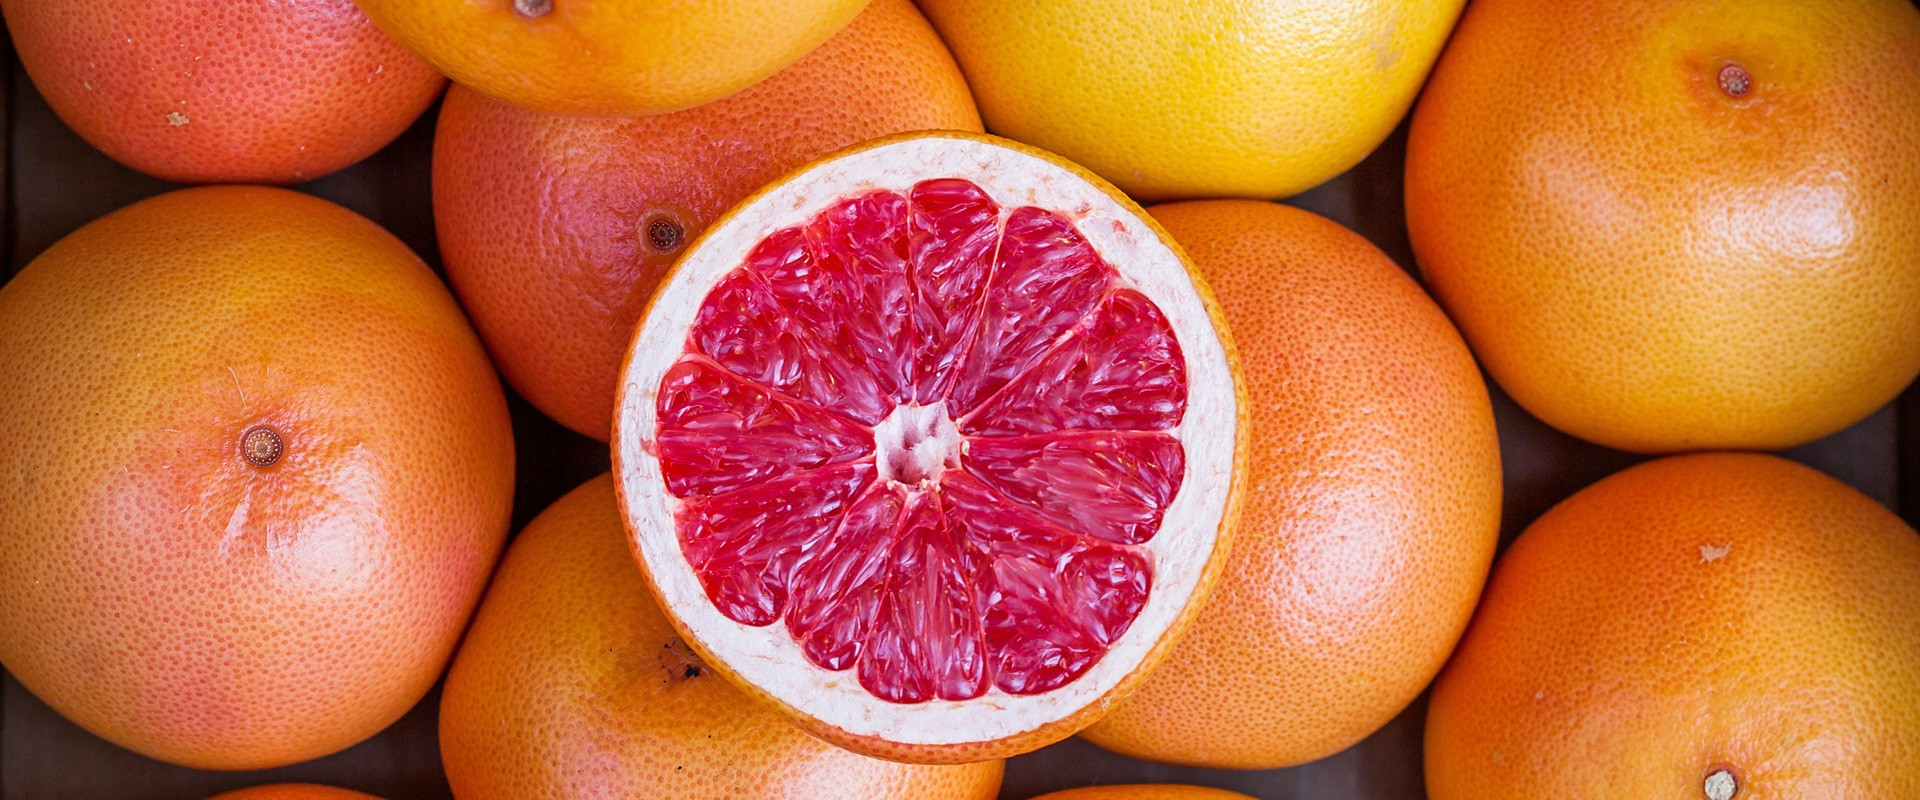 Grapefruit-Product